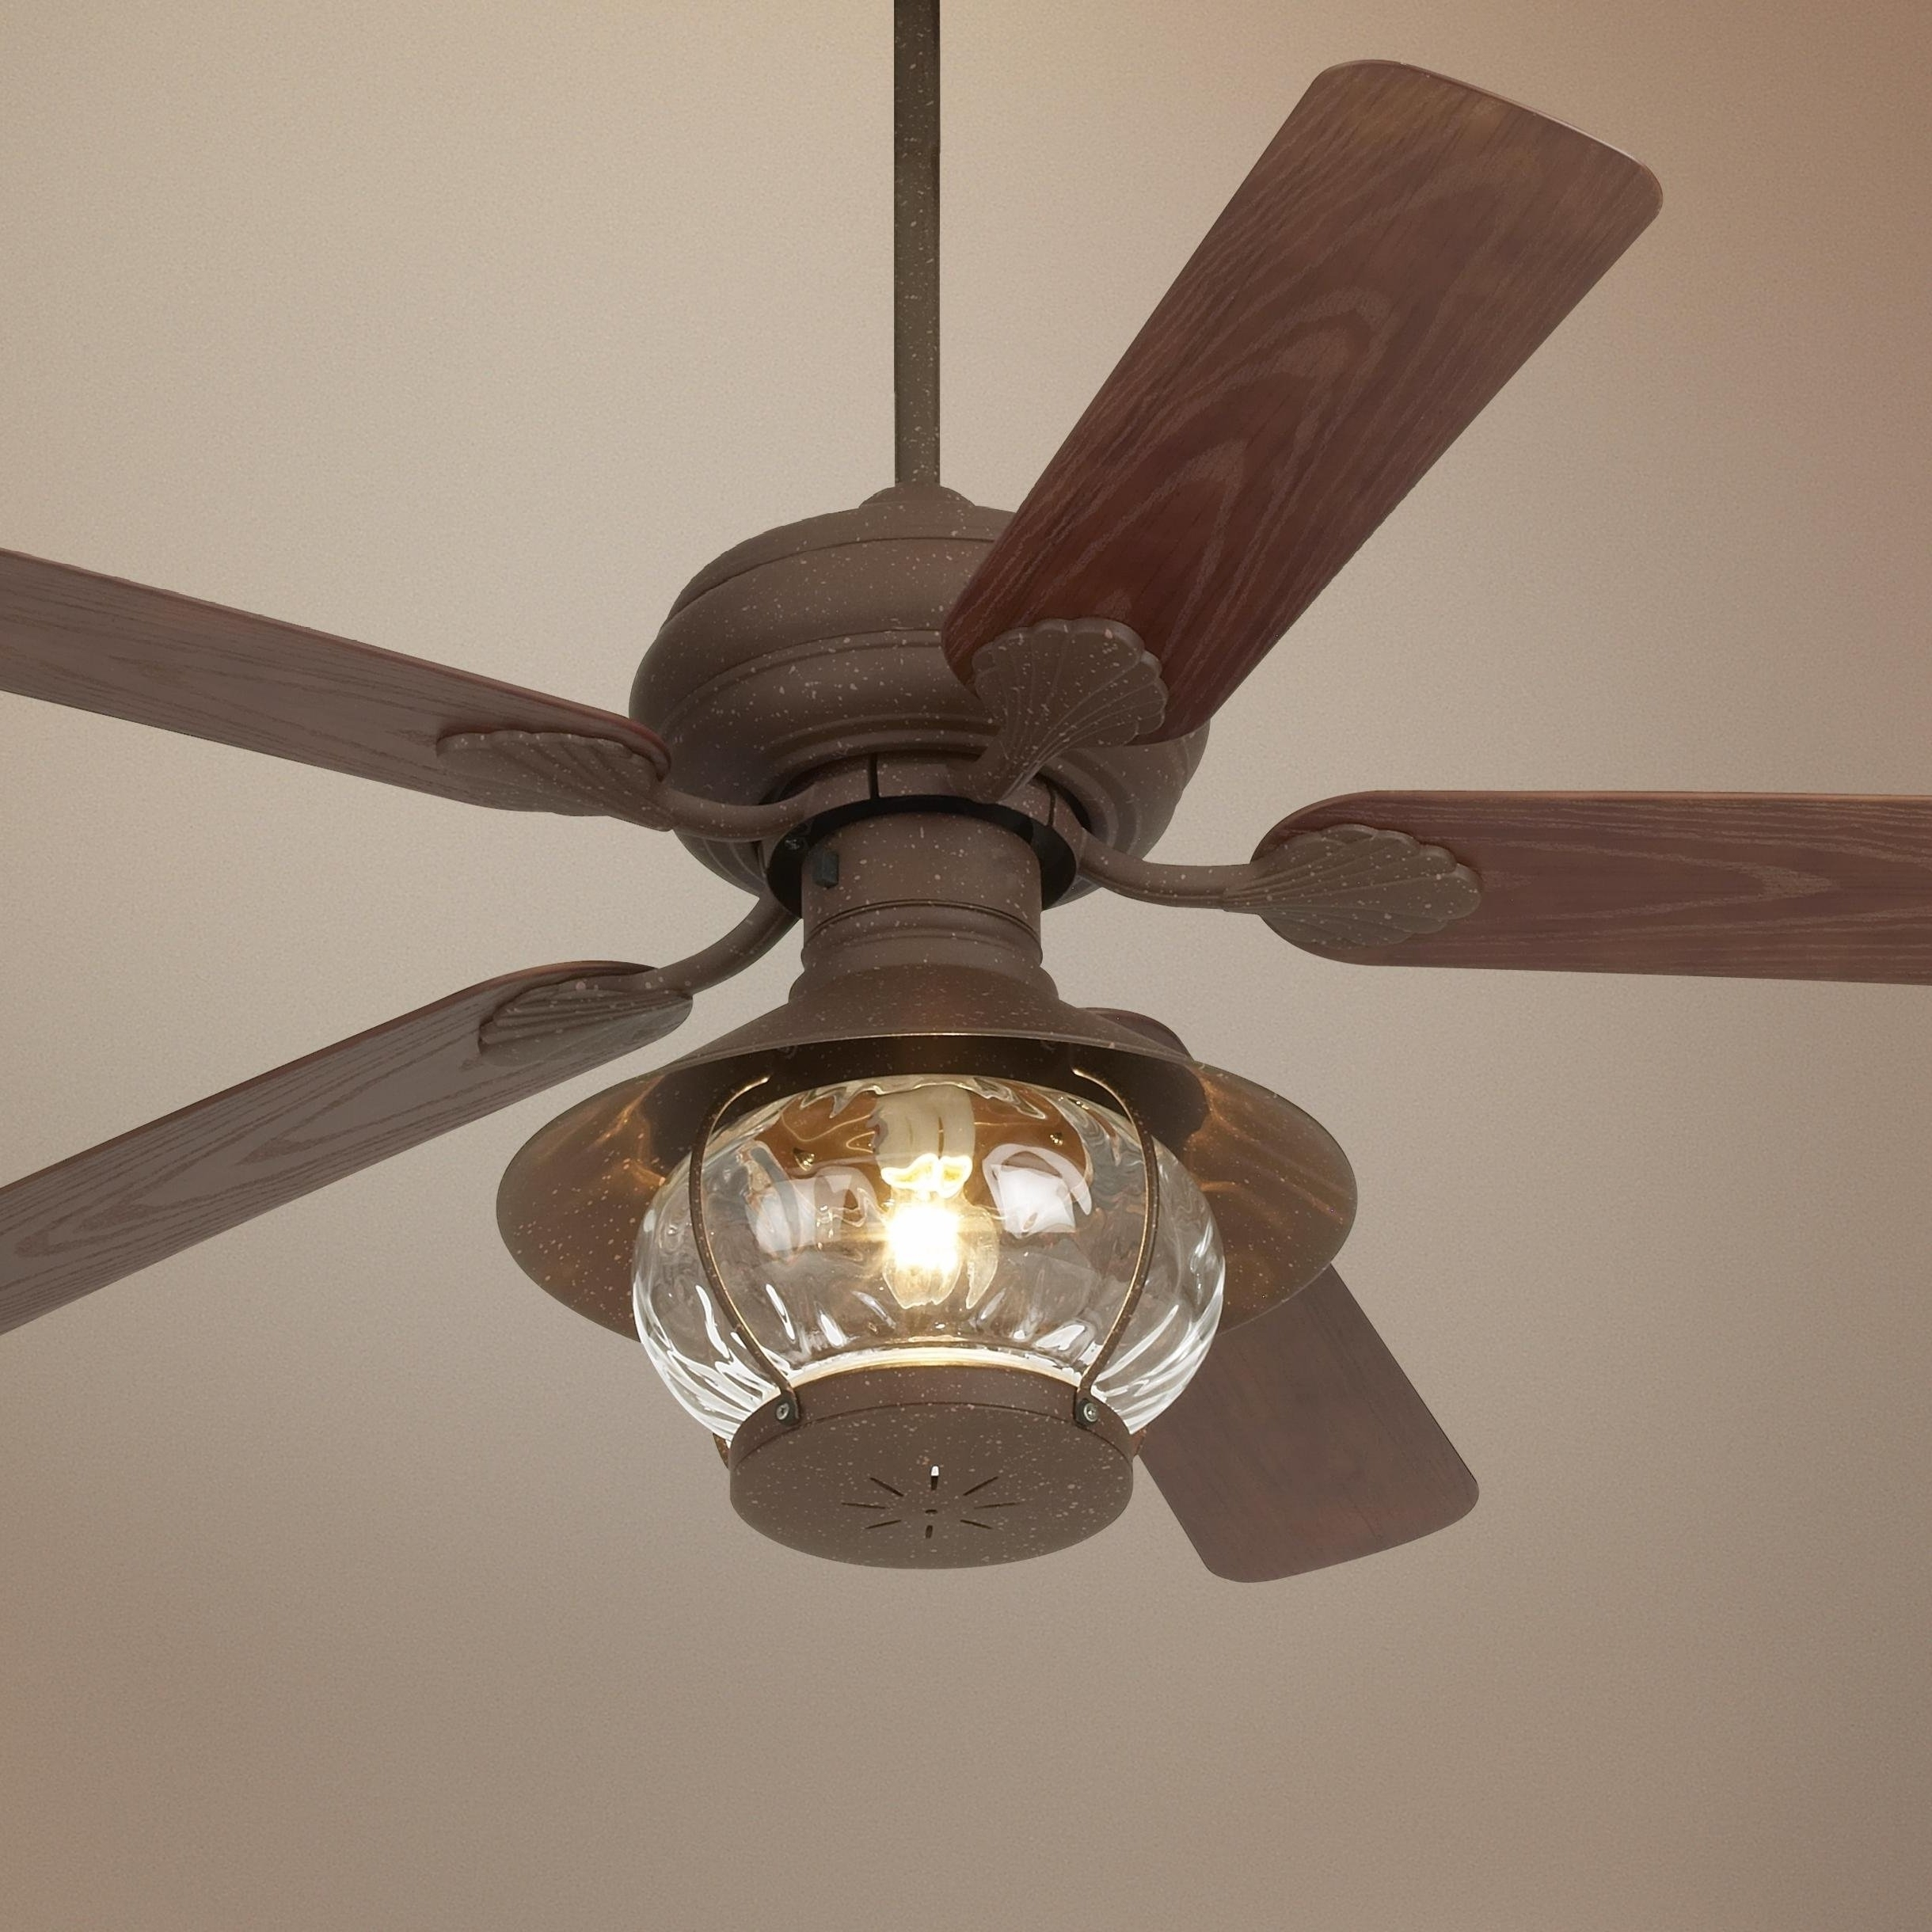 Rustic Outdoor Ceiling Fans With Lights Pertaining To Well Liked Radiant Ceiling Rustic Outdoor Ceiling Fans Western Light Pertaining (Gallery 18 of 20)